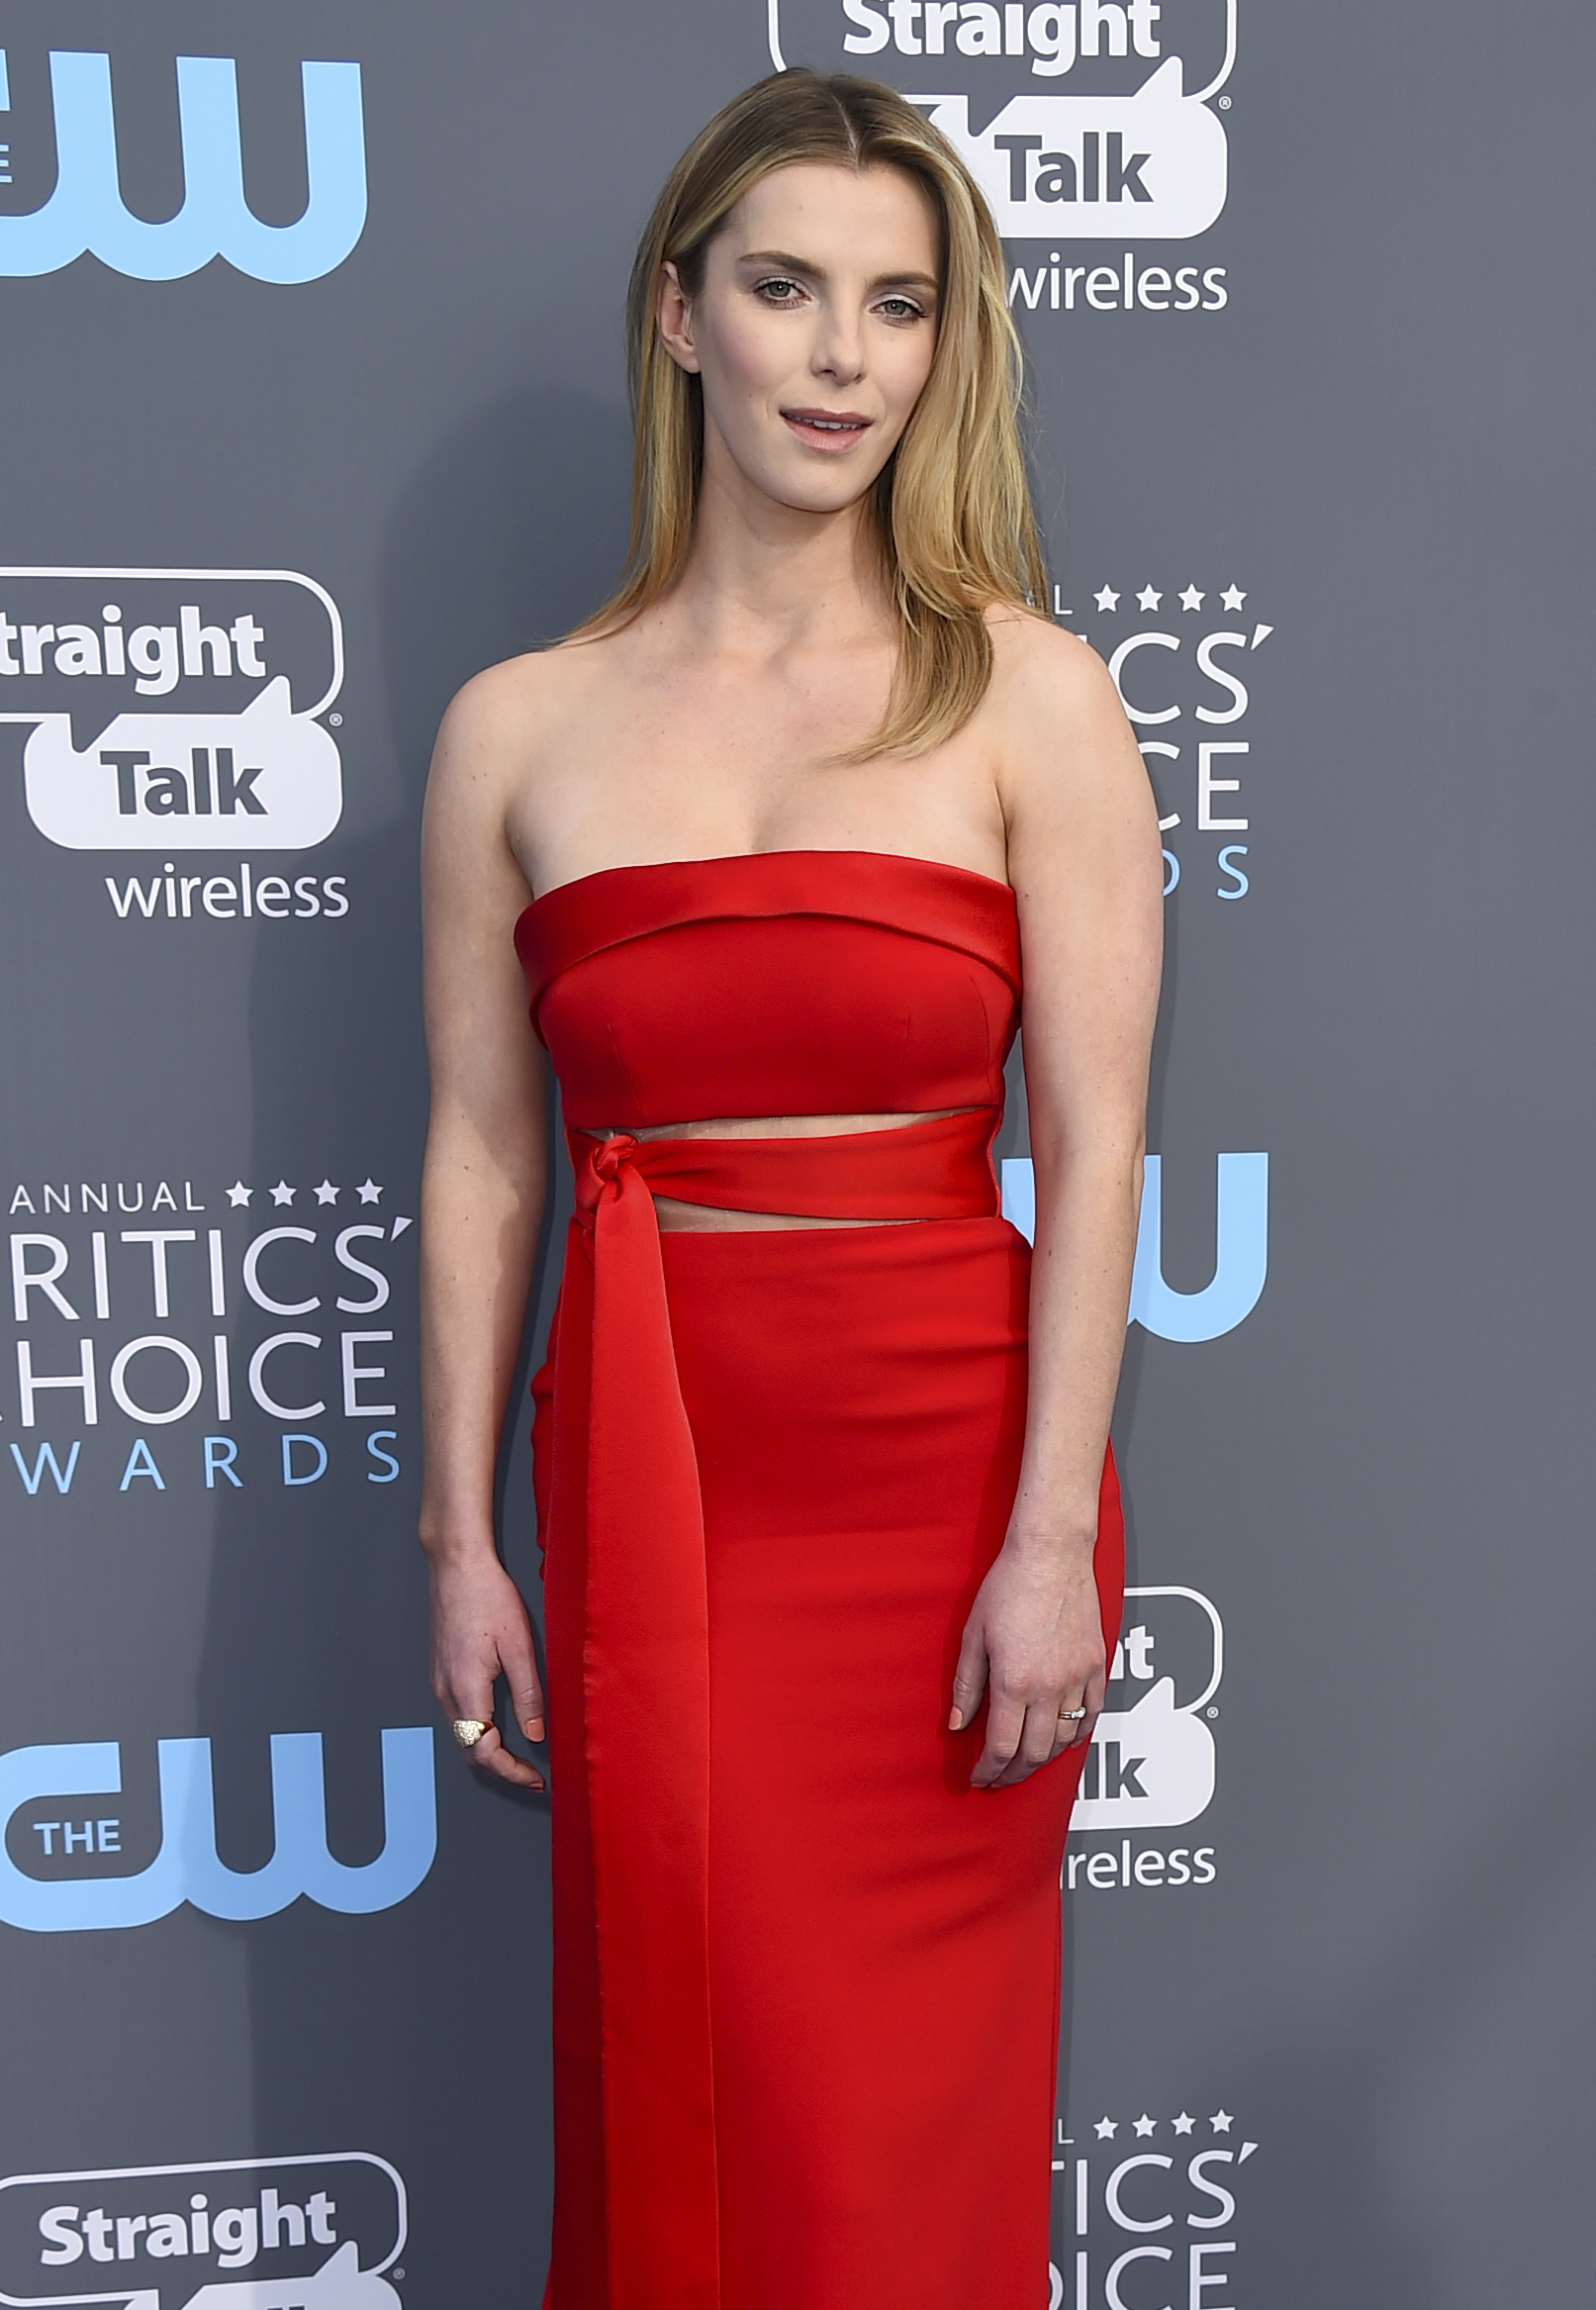 <div class='meta'><div class='origin-logo' data-origin='AP'></div><span class='caption-text' data-credit='Jordan Strauss/Invision/AP'>Betty Gilpin arrives at the 23rd annual Critics' Choice Awards at the Barker Hangar on Thursday, Jan. 11, 2018, in Santa Monica, Calif.</span></div>